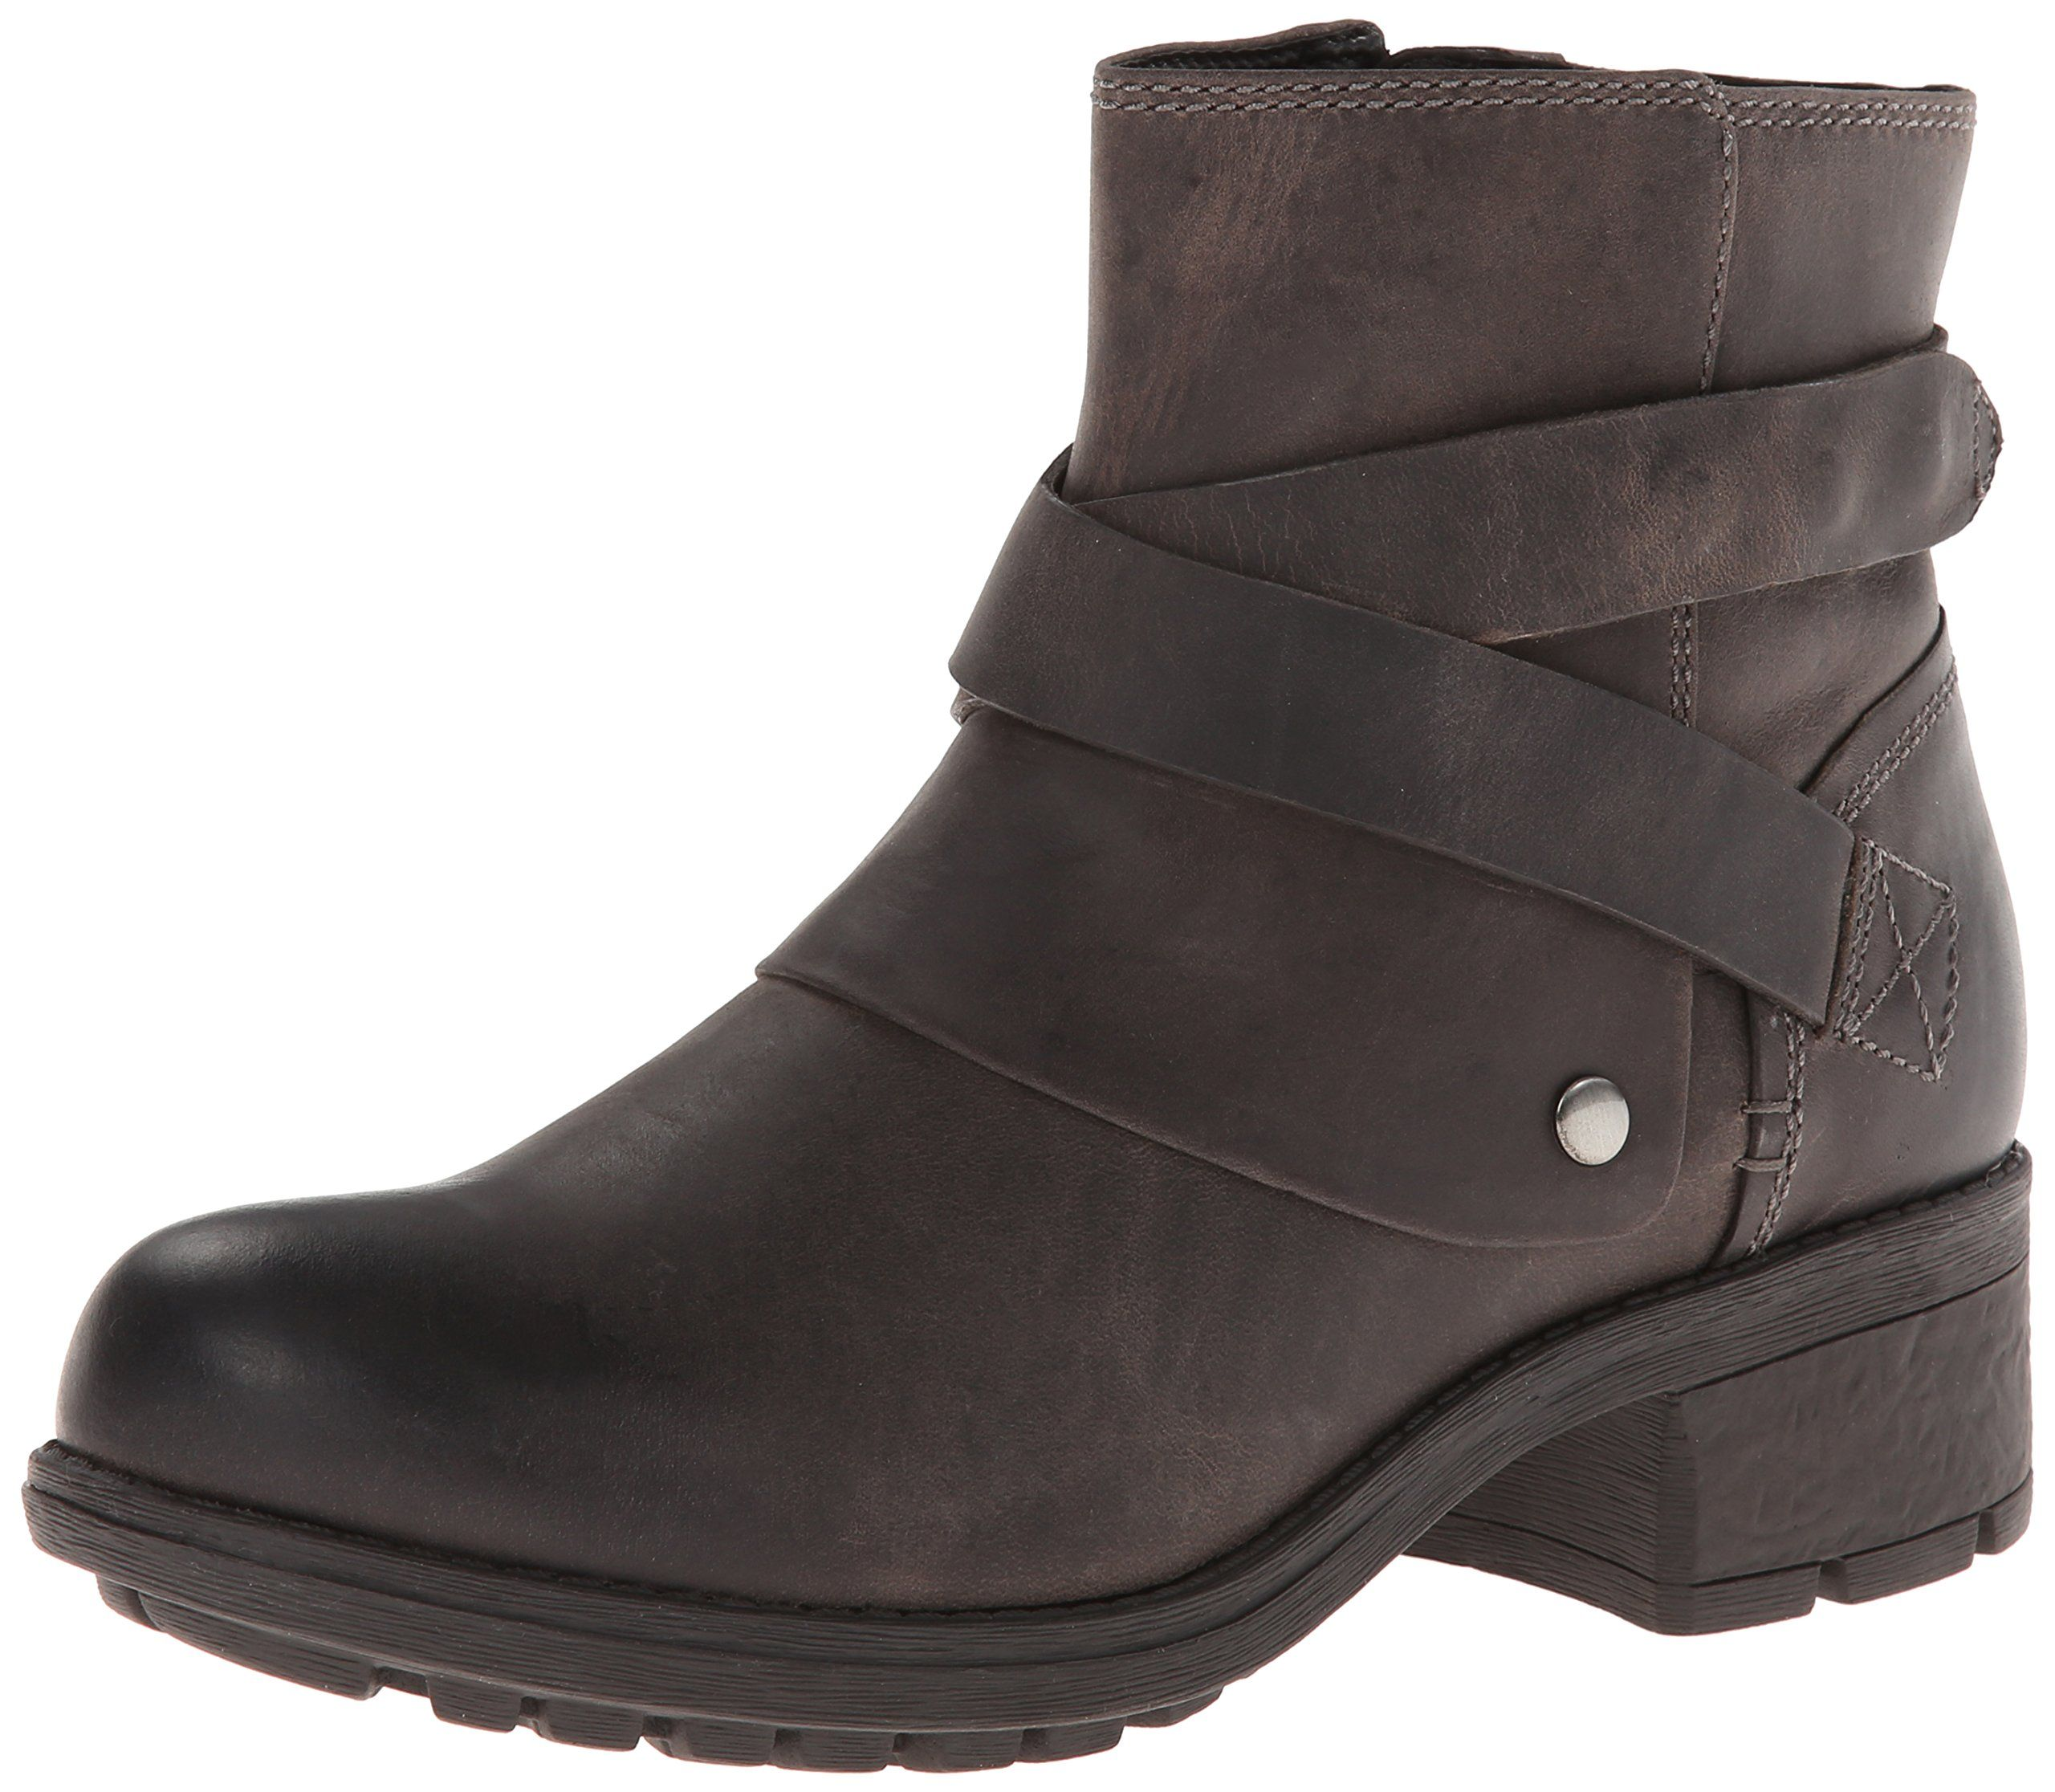 amazon clarks womens ankle boots